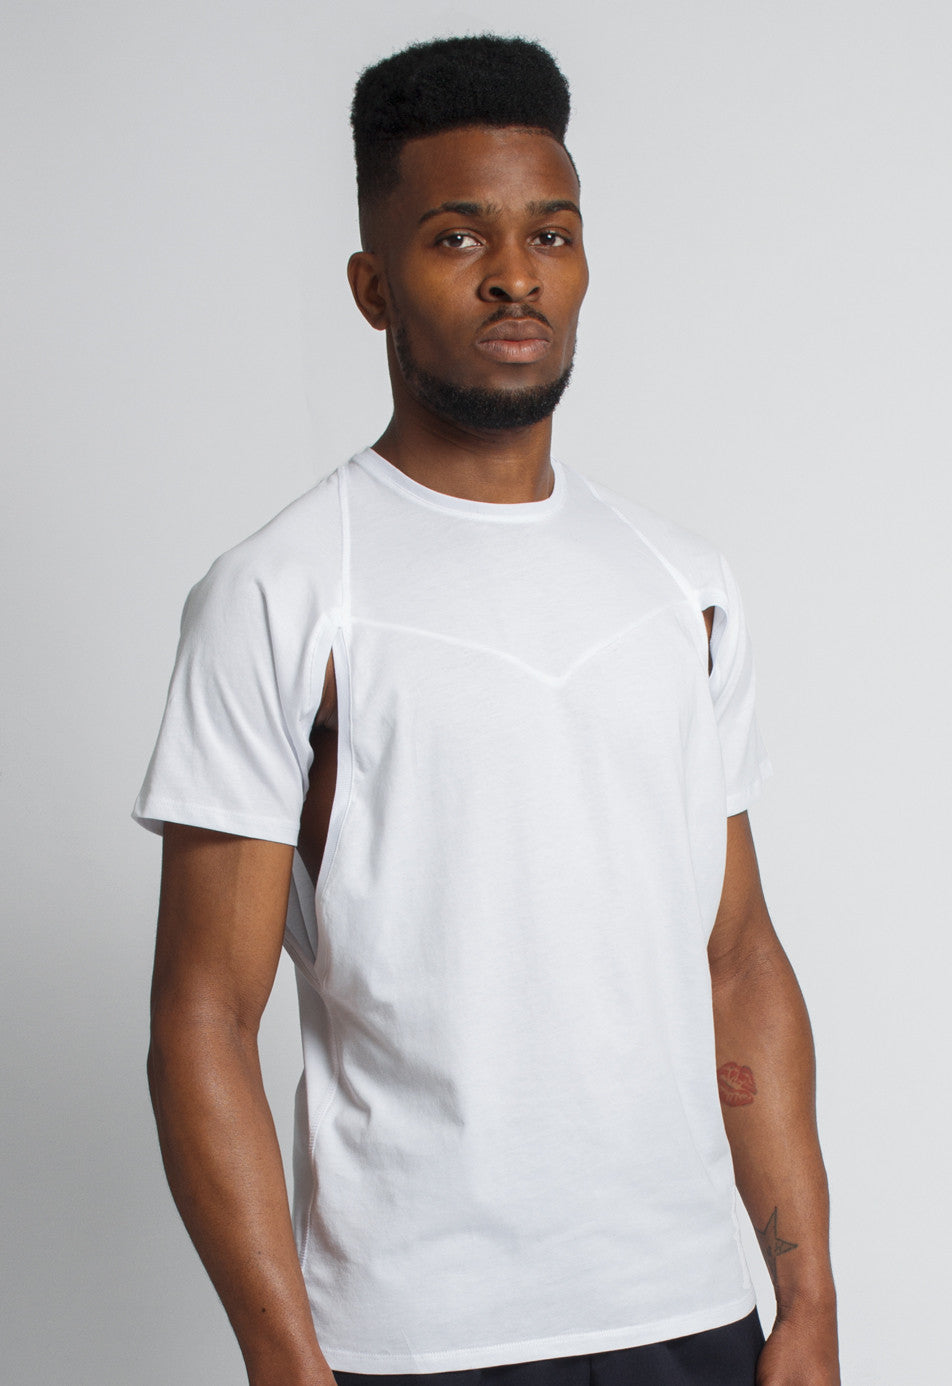 Xhosa - men's geometric cutout white T-shirt